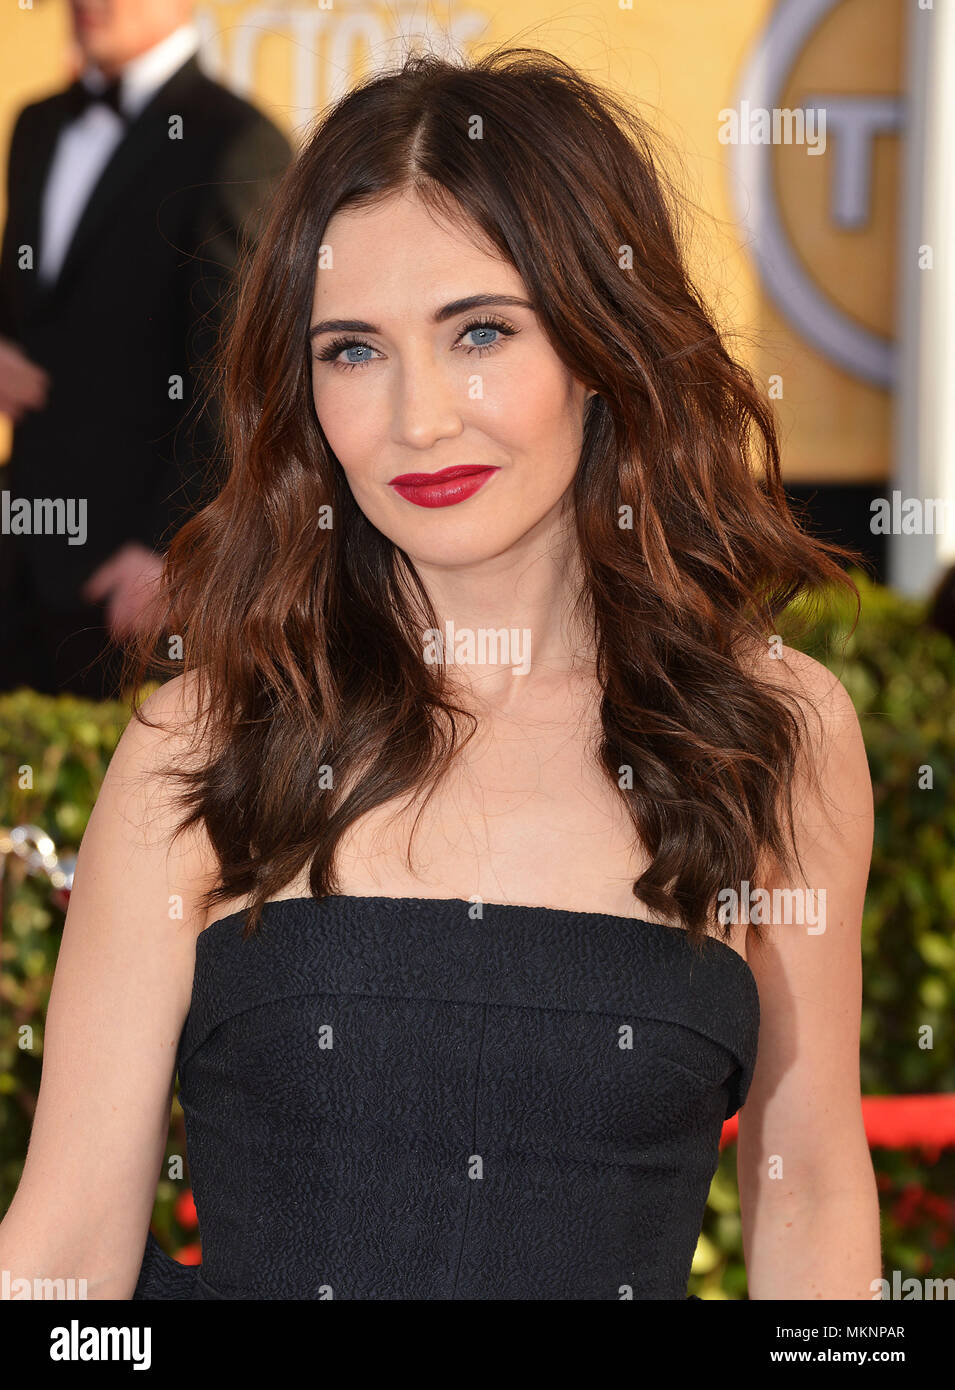 Celebrites Carice Van Houten nude photos 2019